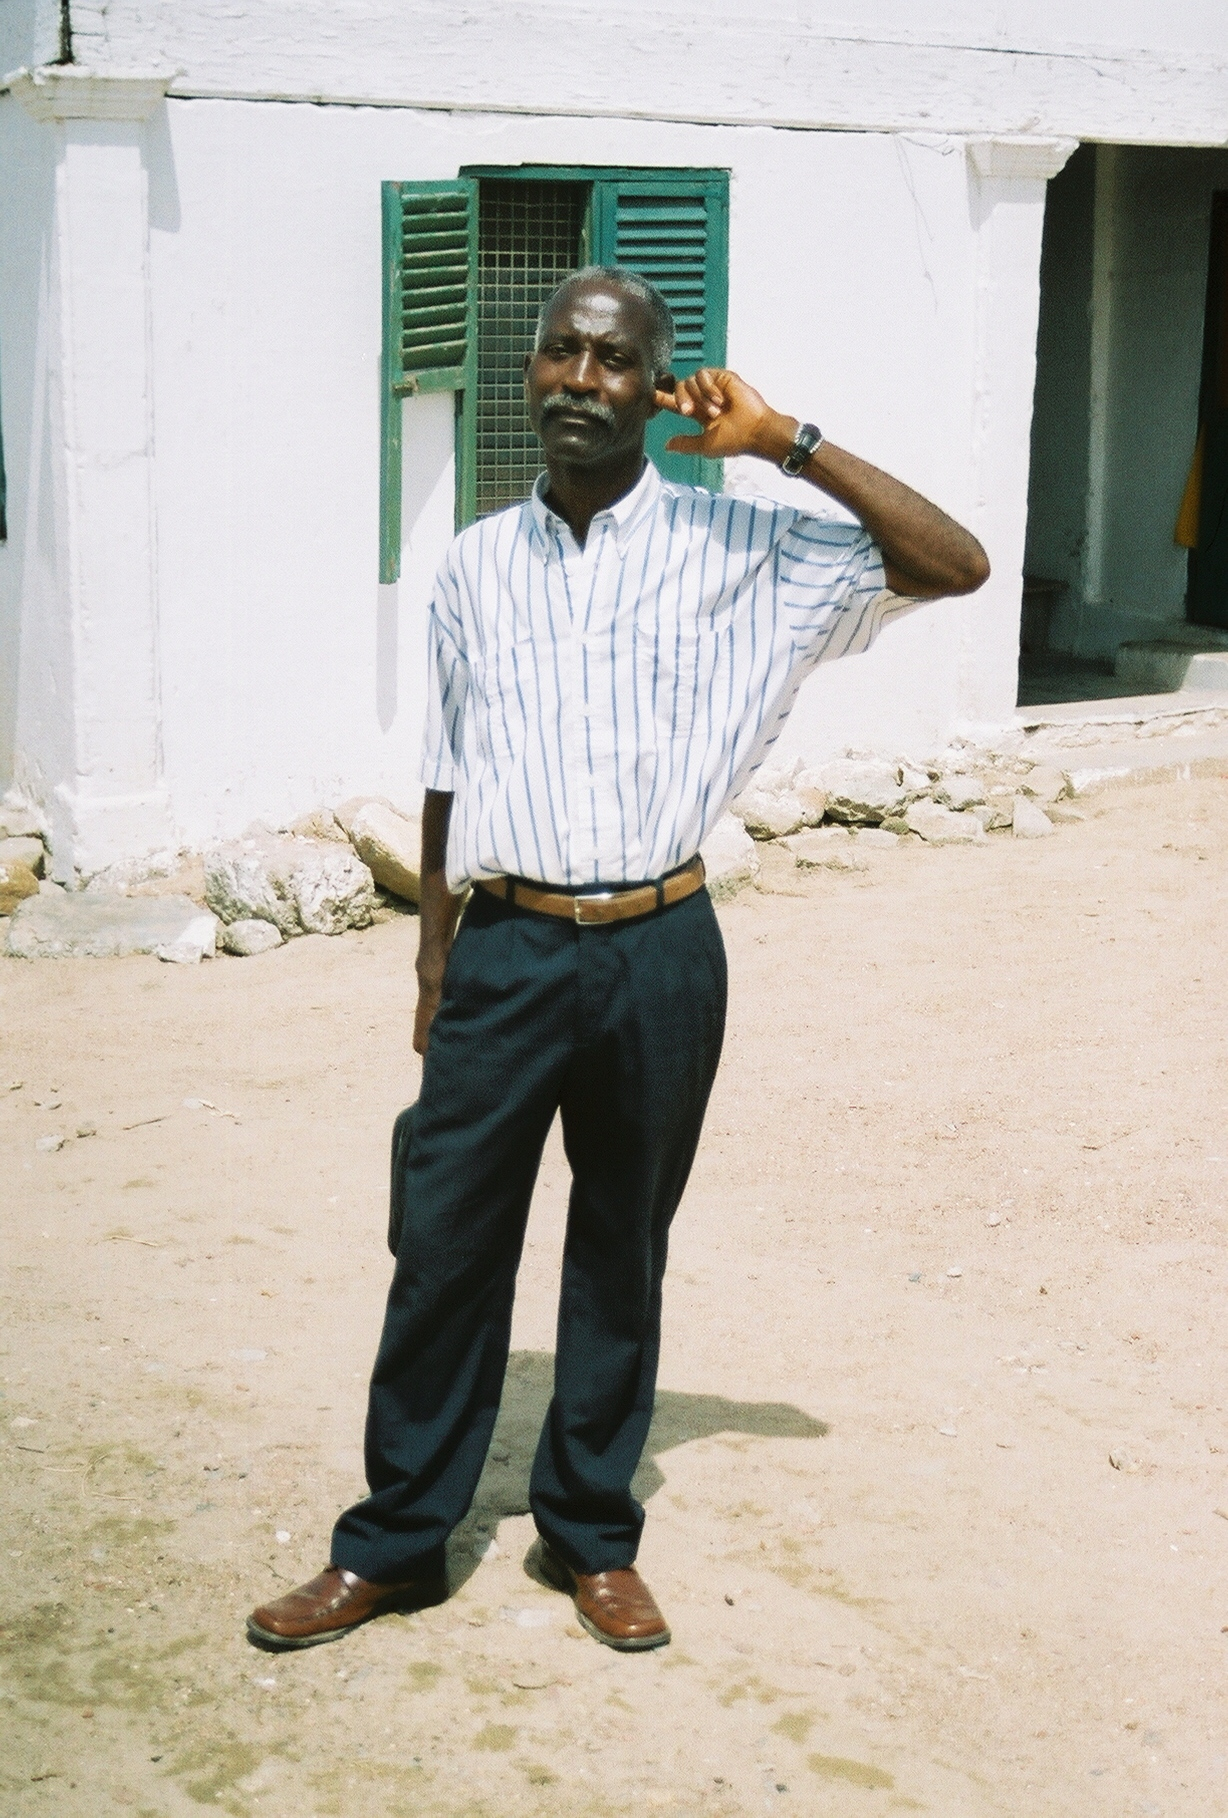 This man was born deaf in one ear but was healed by the power of Jesus in a crusade in Africa.